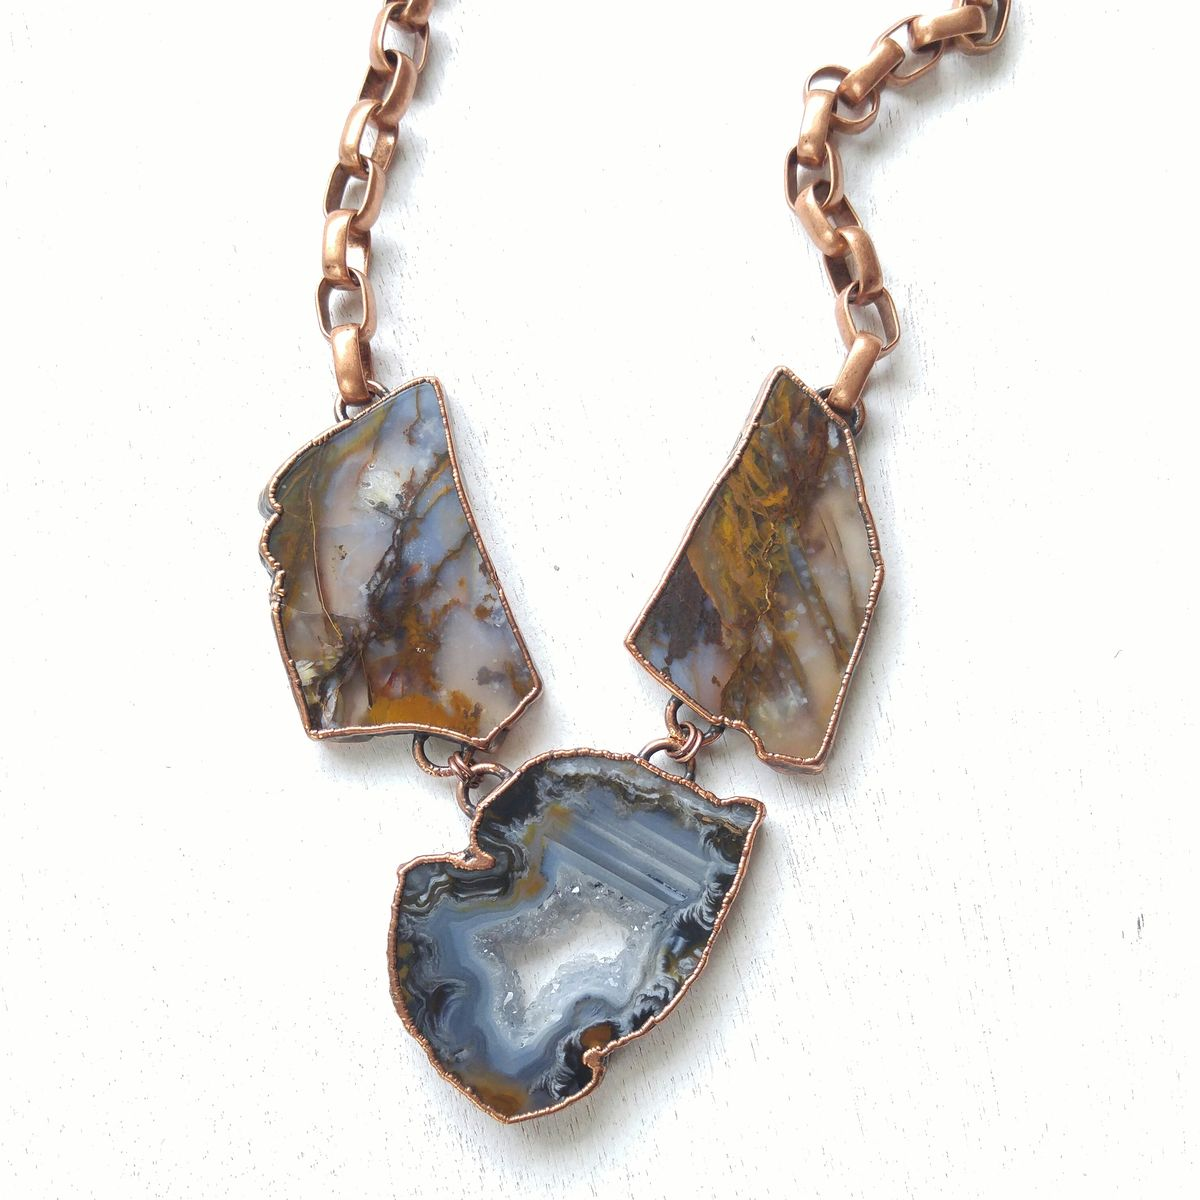 Kaeida Geode Necklace - product image